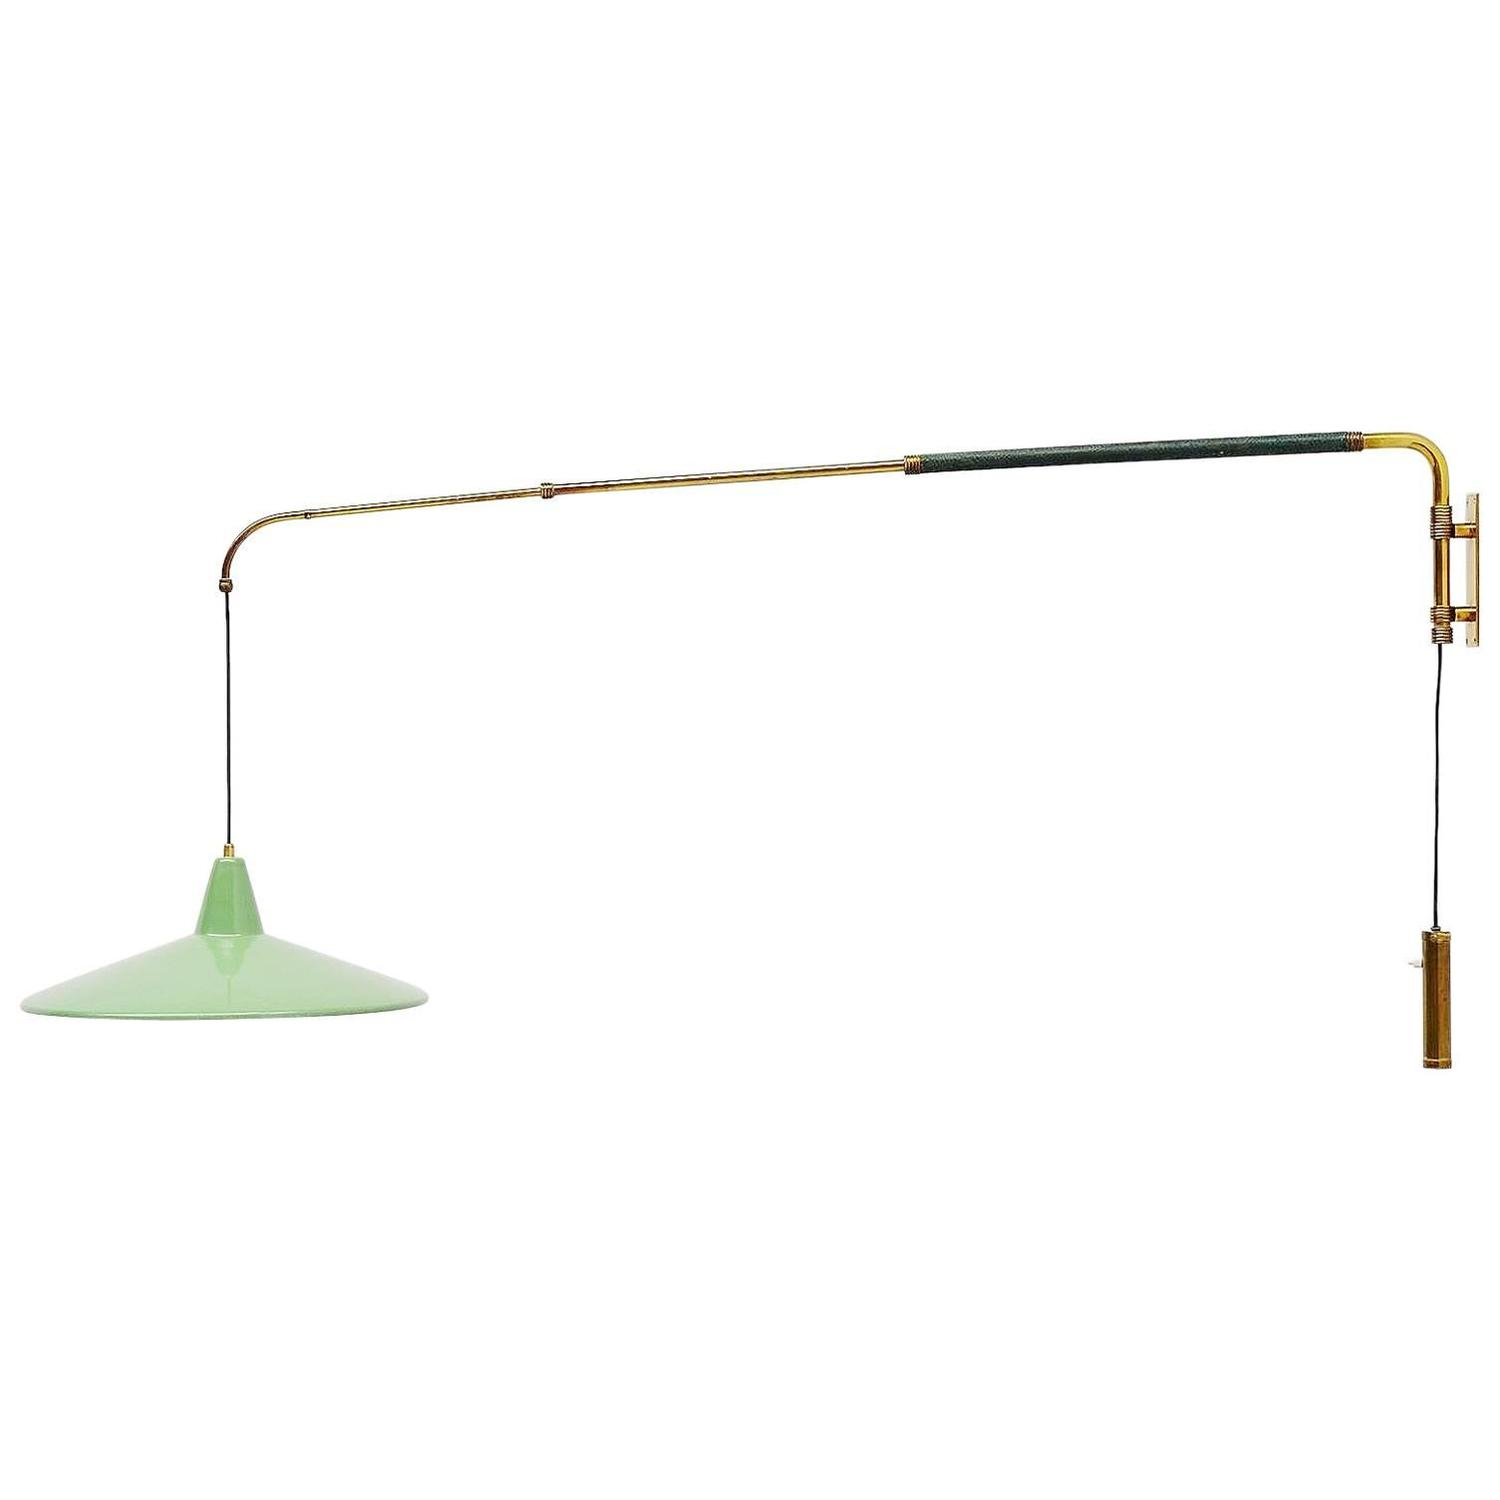 Wall Lights Extendable : Arredoluce Attributed Extendable Wall Lamp, Italy, 1950 For Sale at 1stdibs